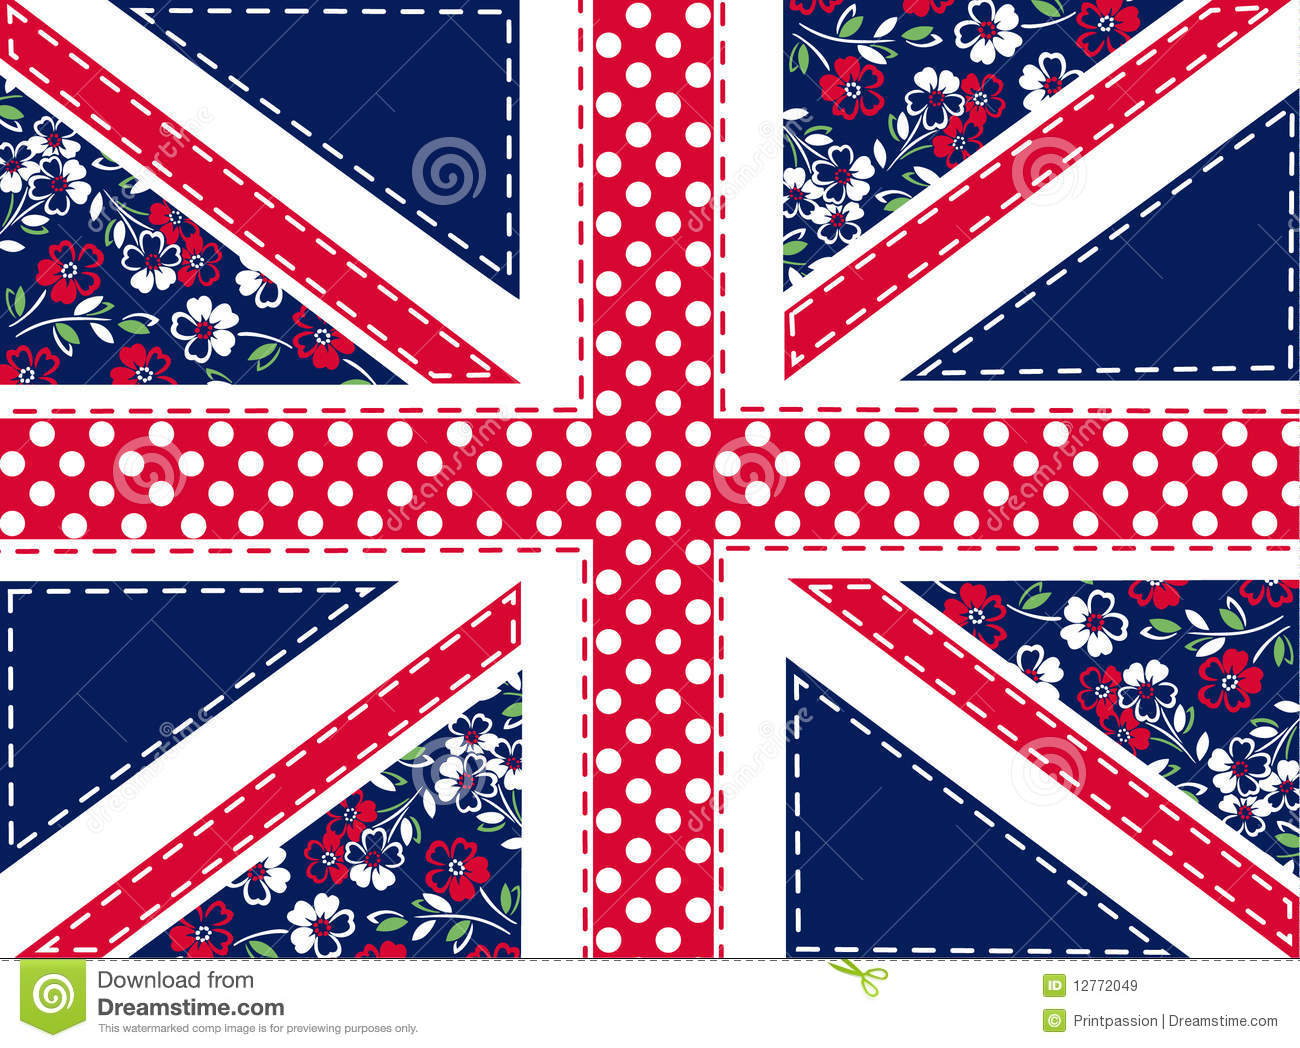 Cute Wallpaper Patterns Patchwork Union Jack Stock Vector Image Of Chearm Love